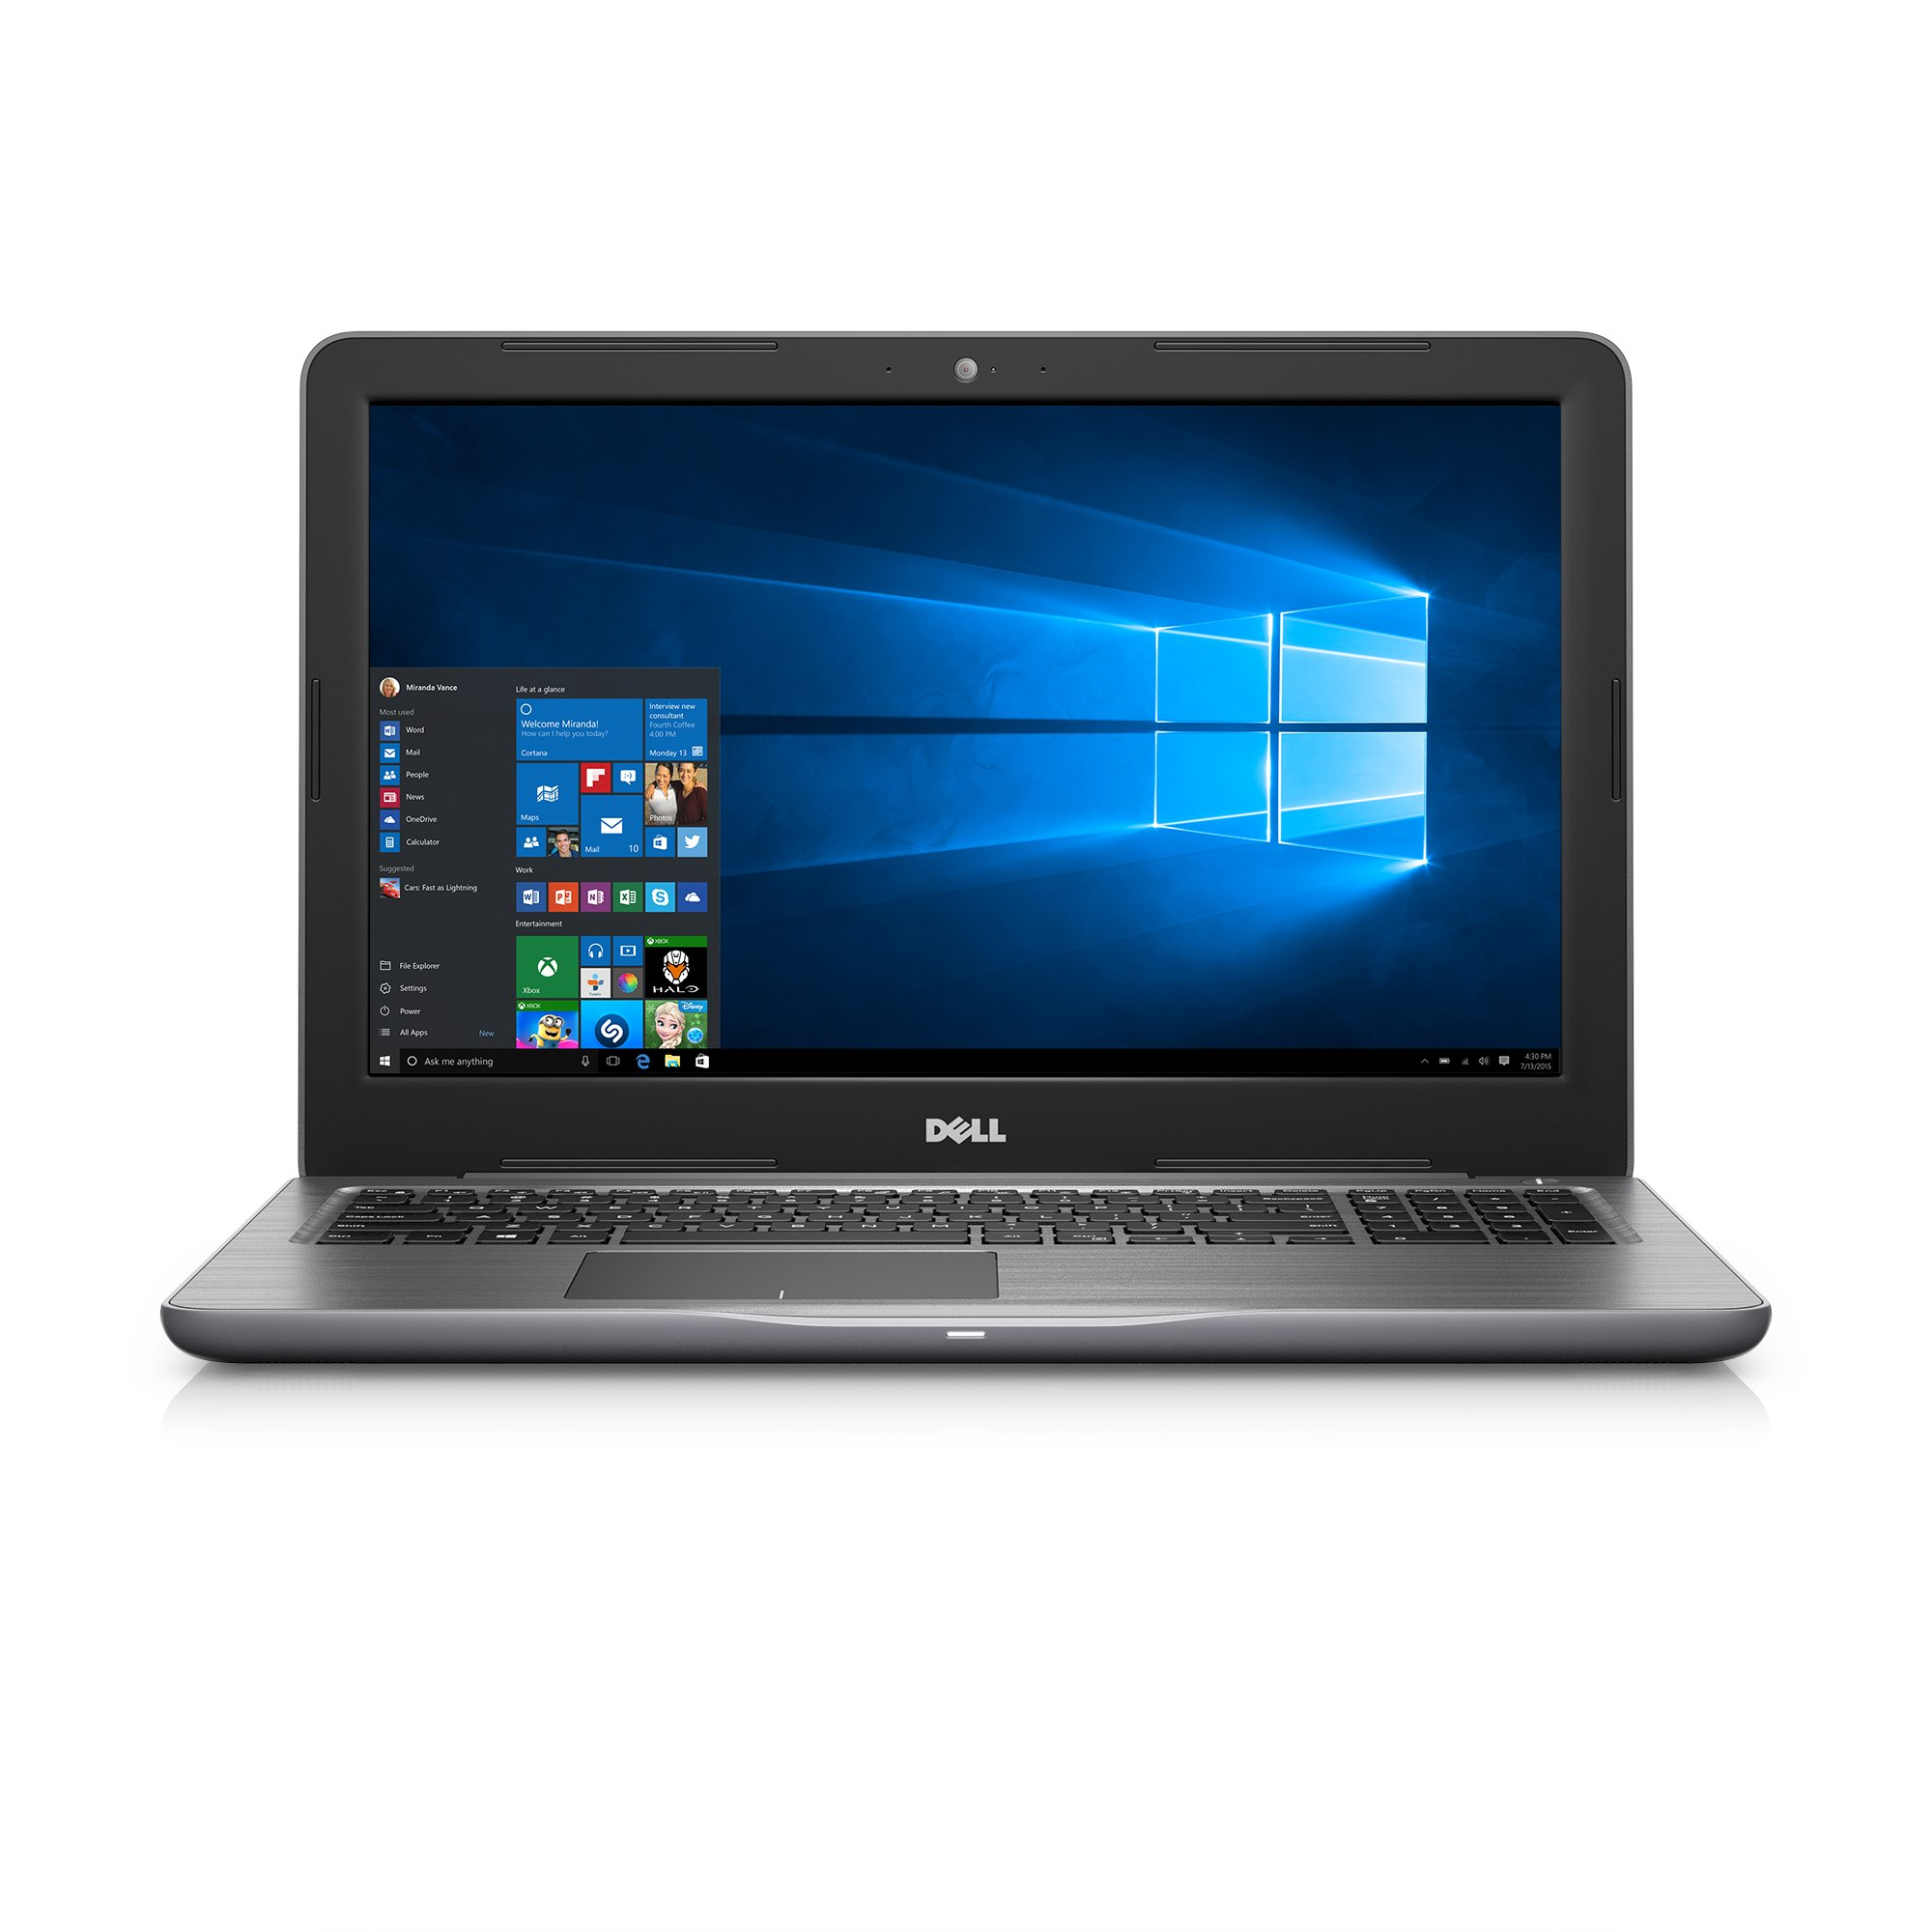 Dell Inspiron i5567-3655GRY 15.6'' FHD Laptop (7th Generation Intel Core i5, 8GB RAM, 1 TB HDD)